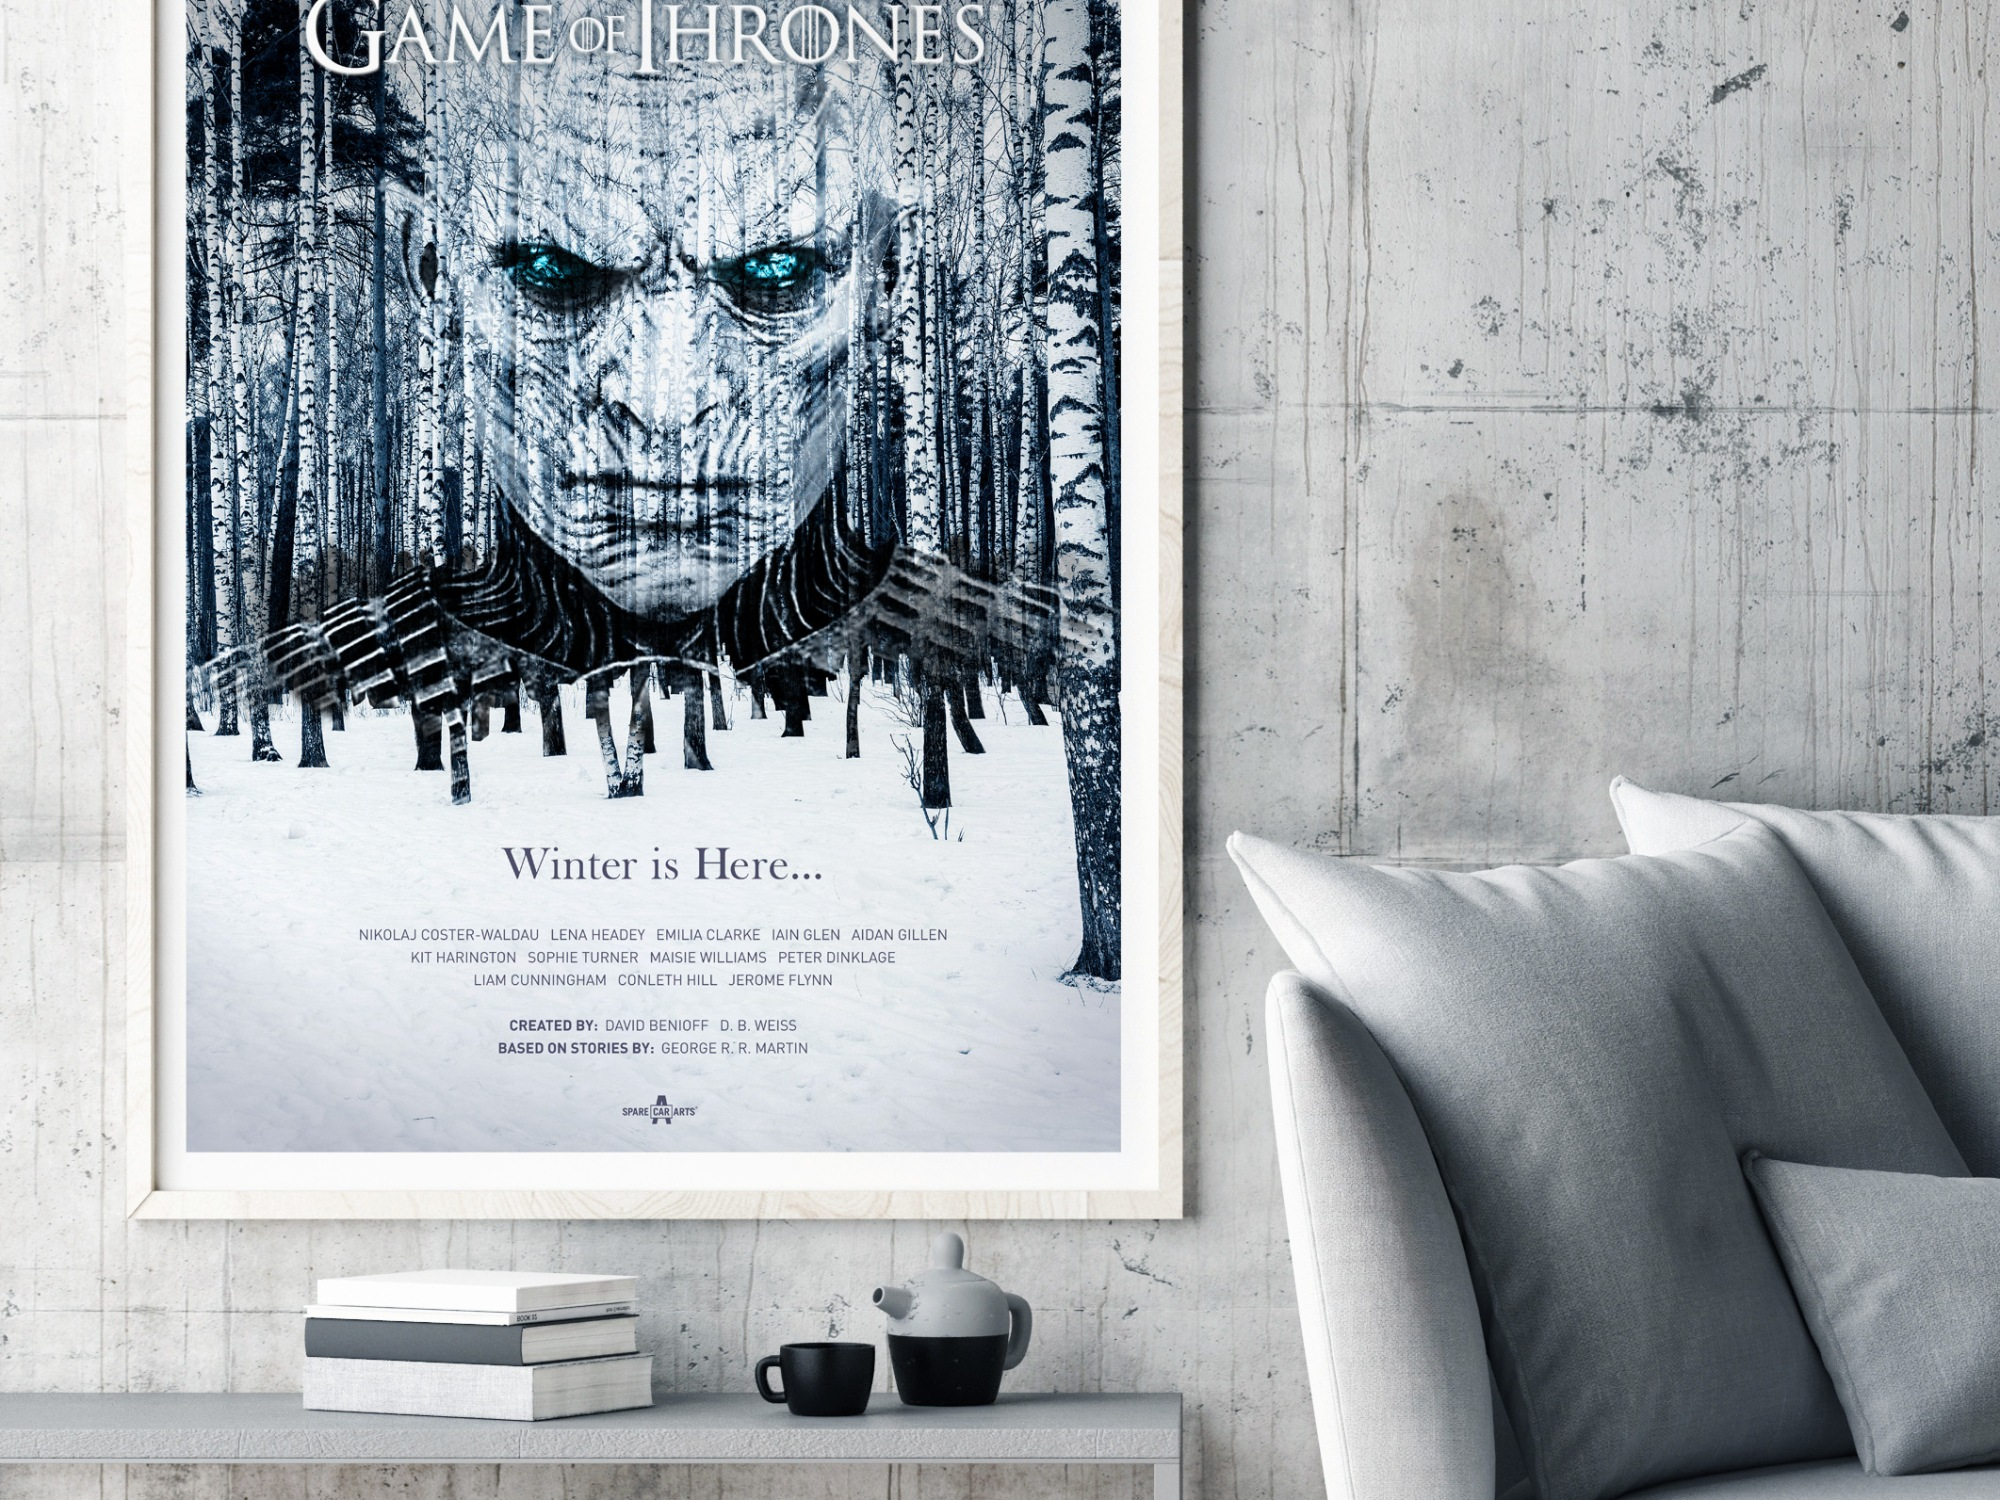 Game of Thrones Poster Framed poster in hipster living room